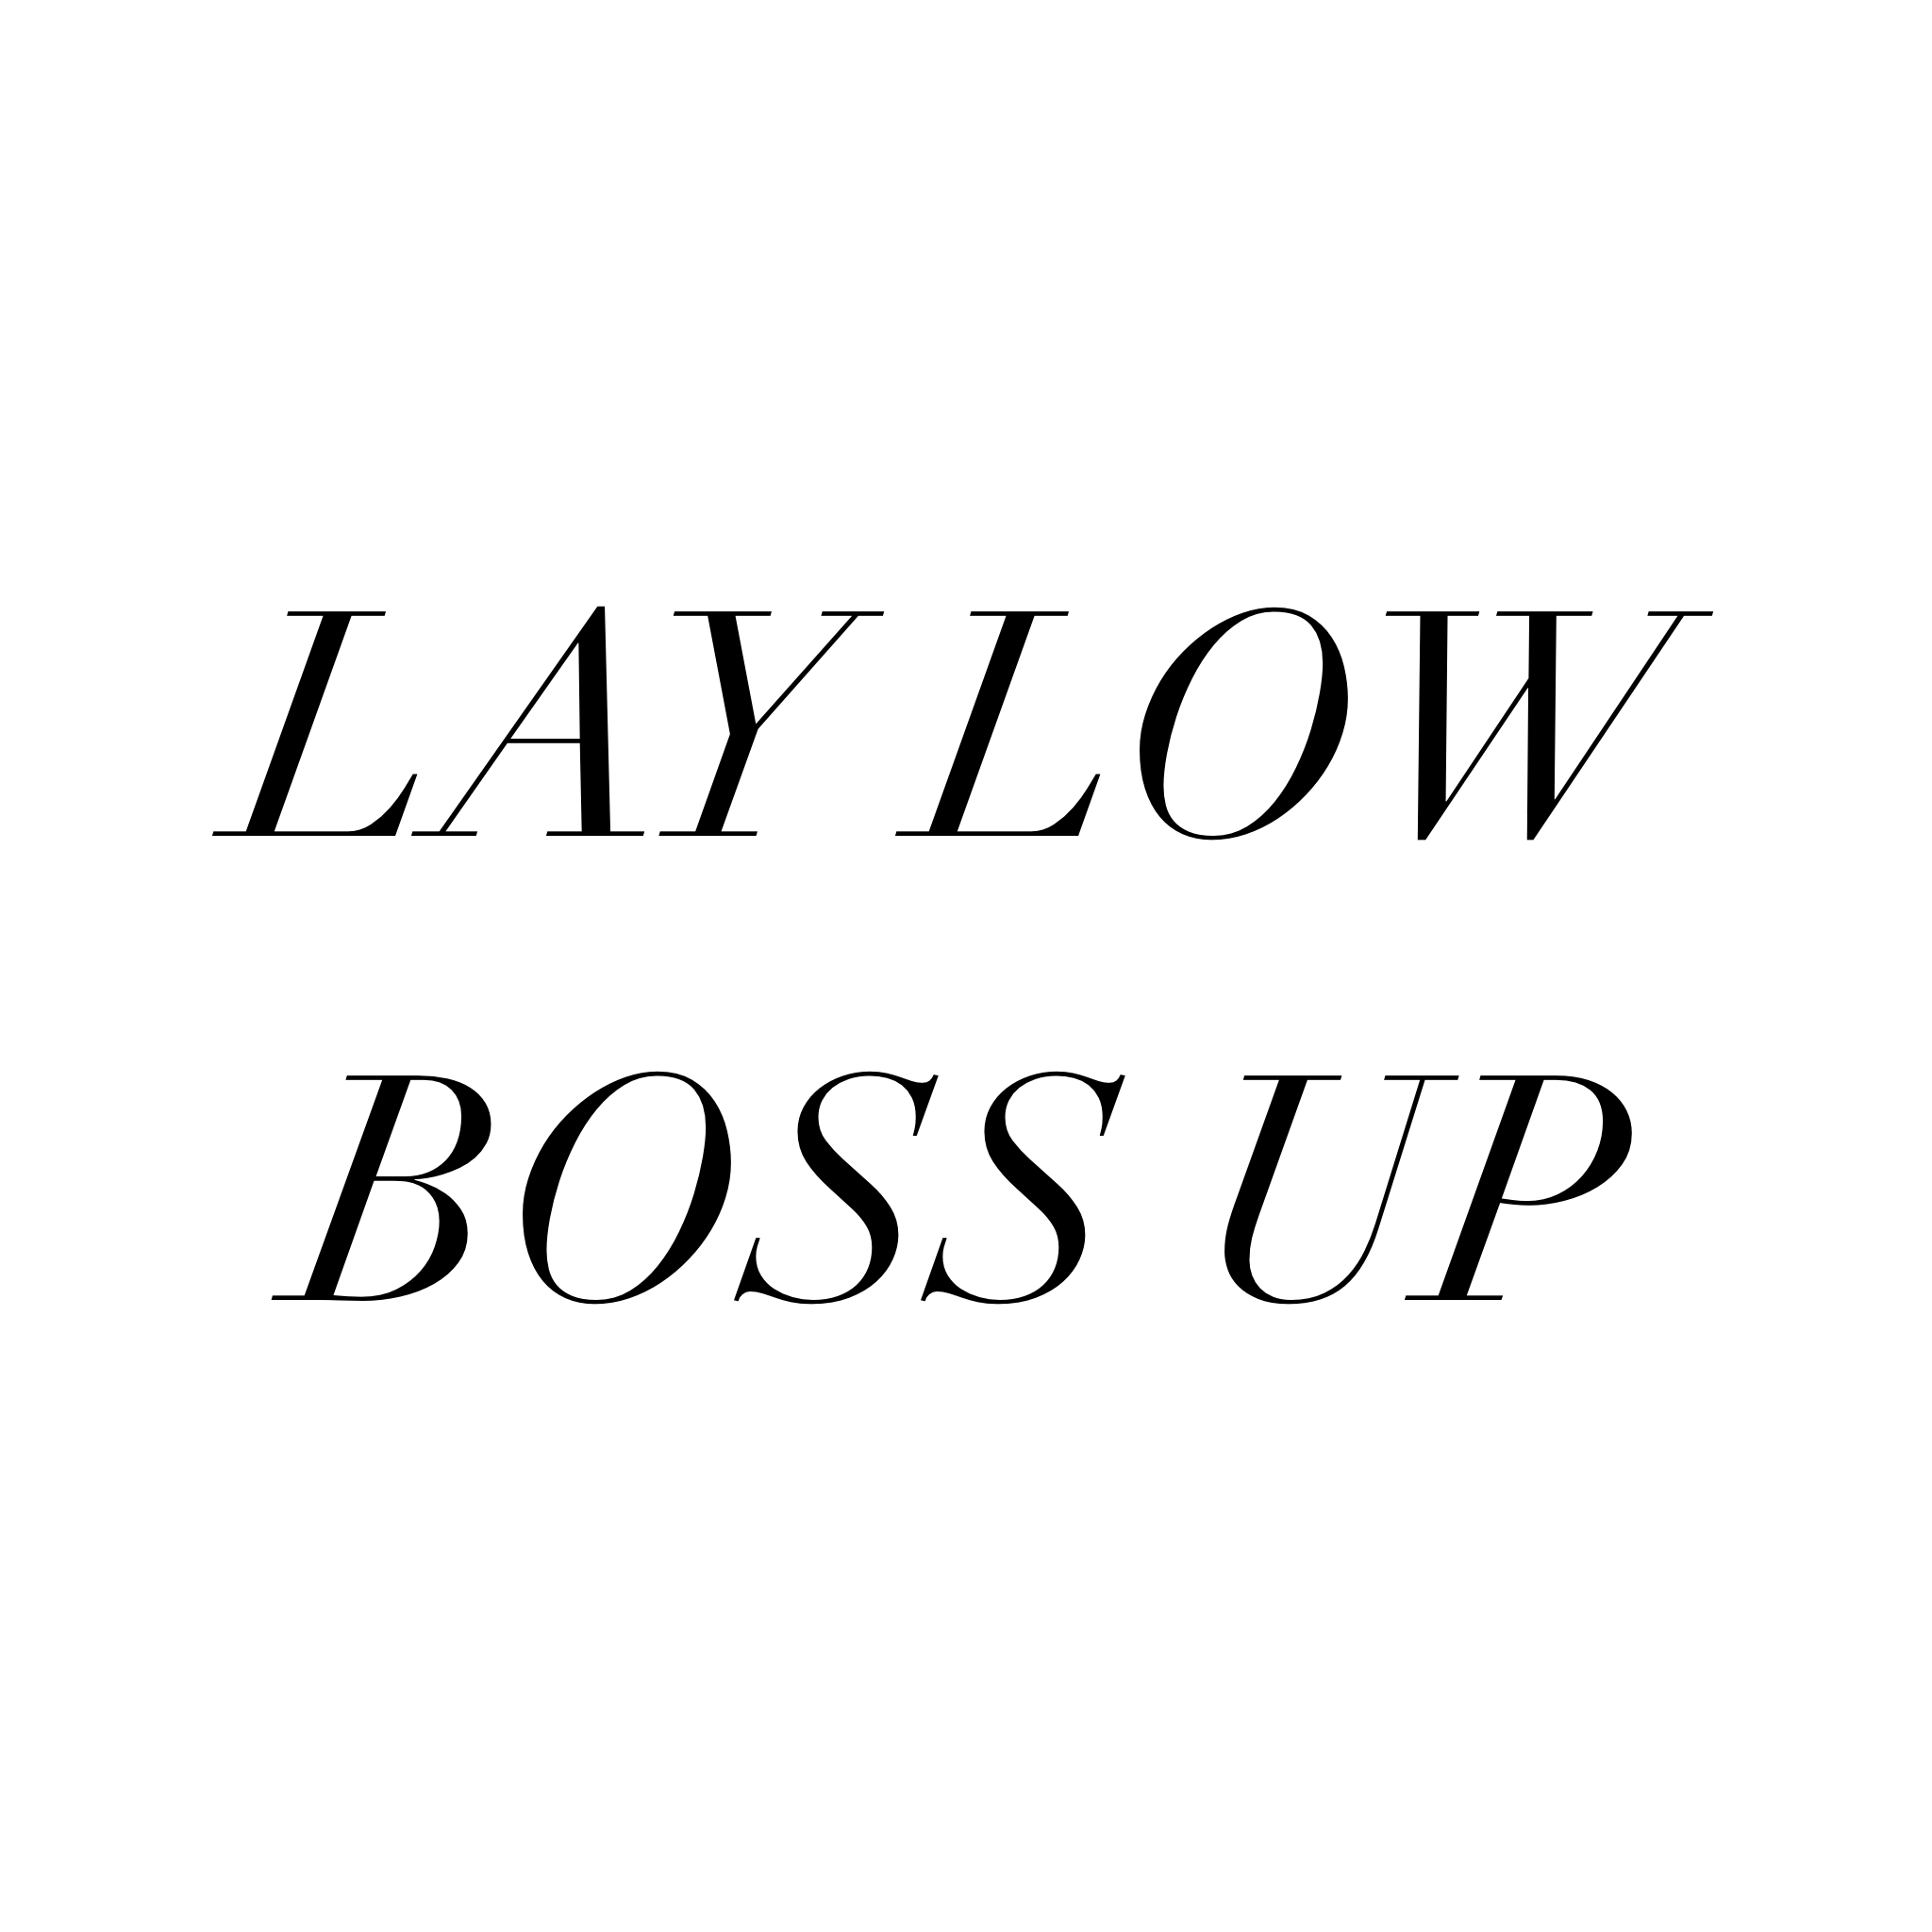 Lay Low Boss Up Rest Work Face Girl Boss Badass Girl Boss